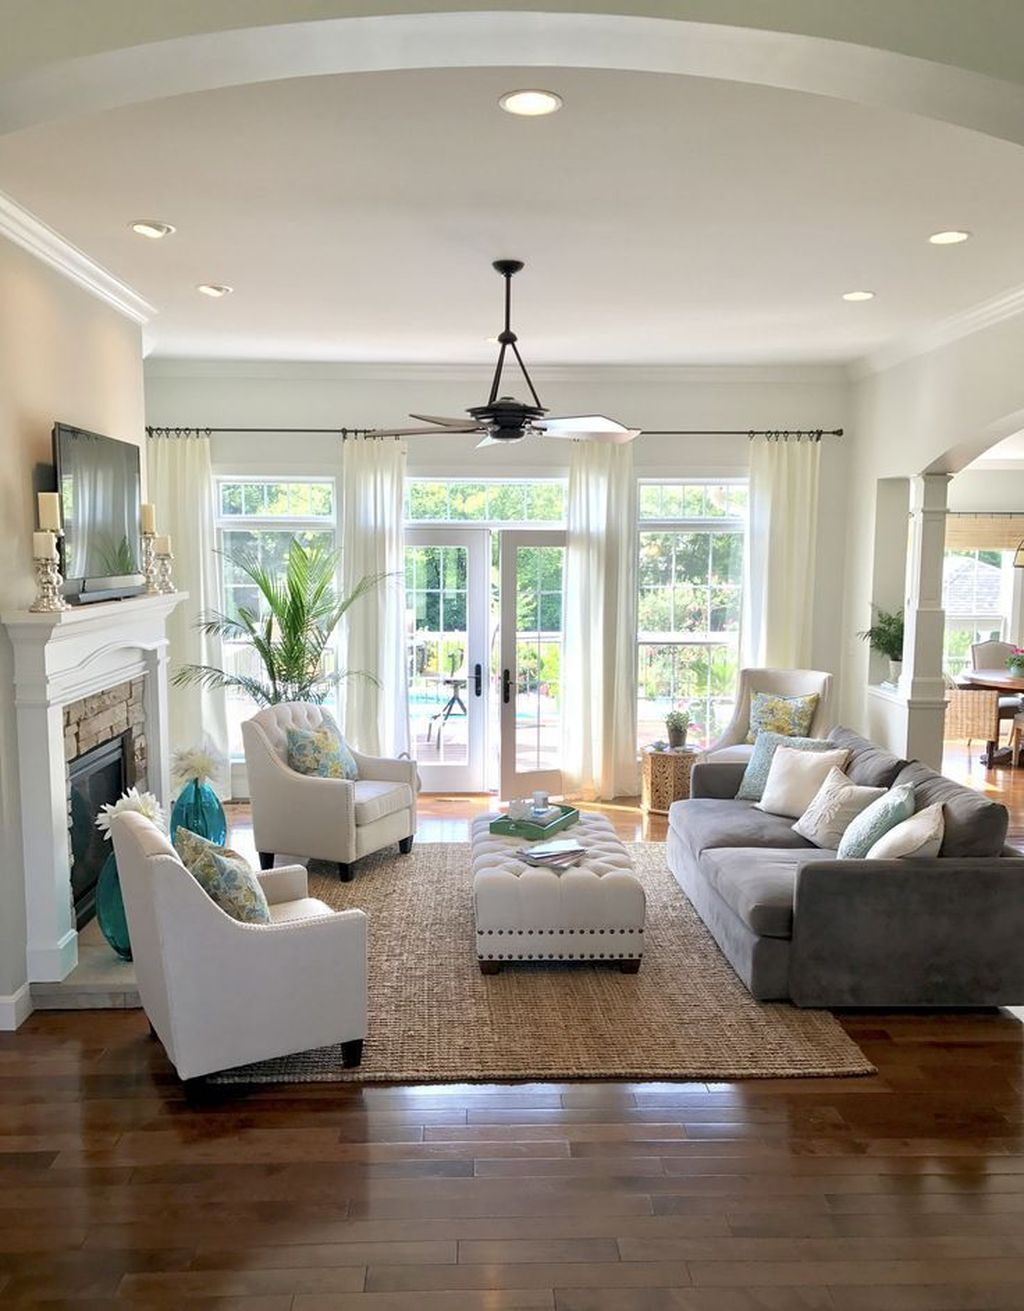 20+ Brilliant Open Concept Ideas For Living Room images